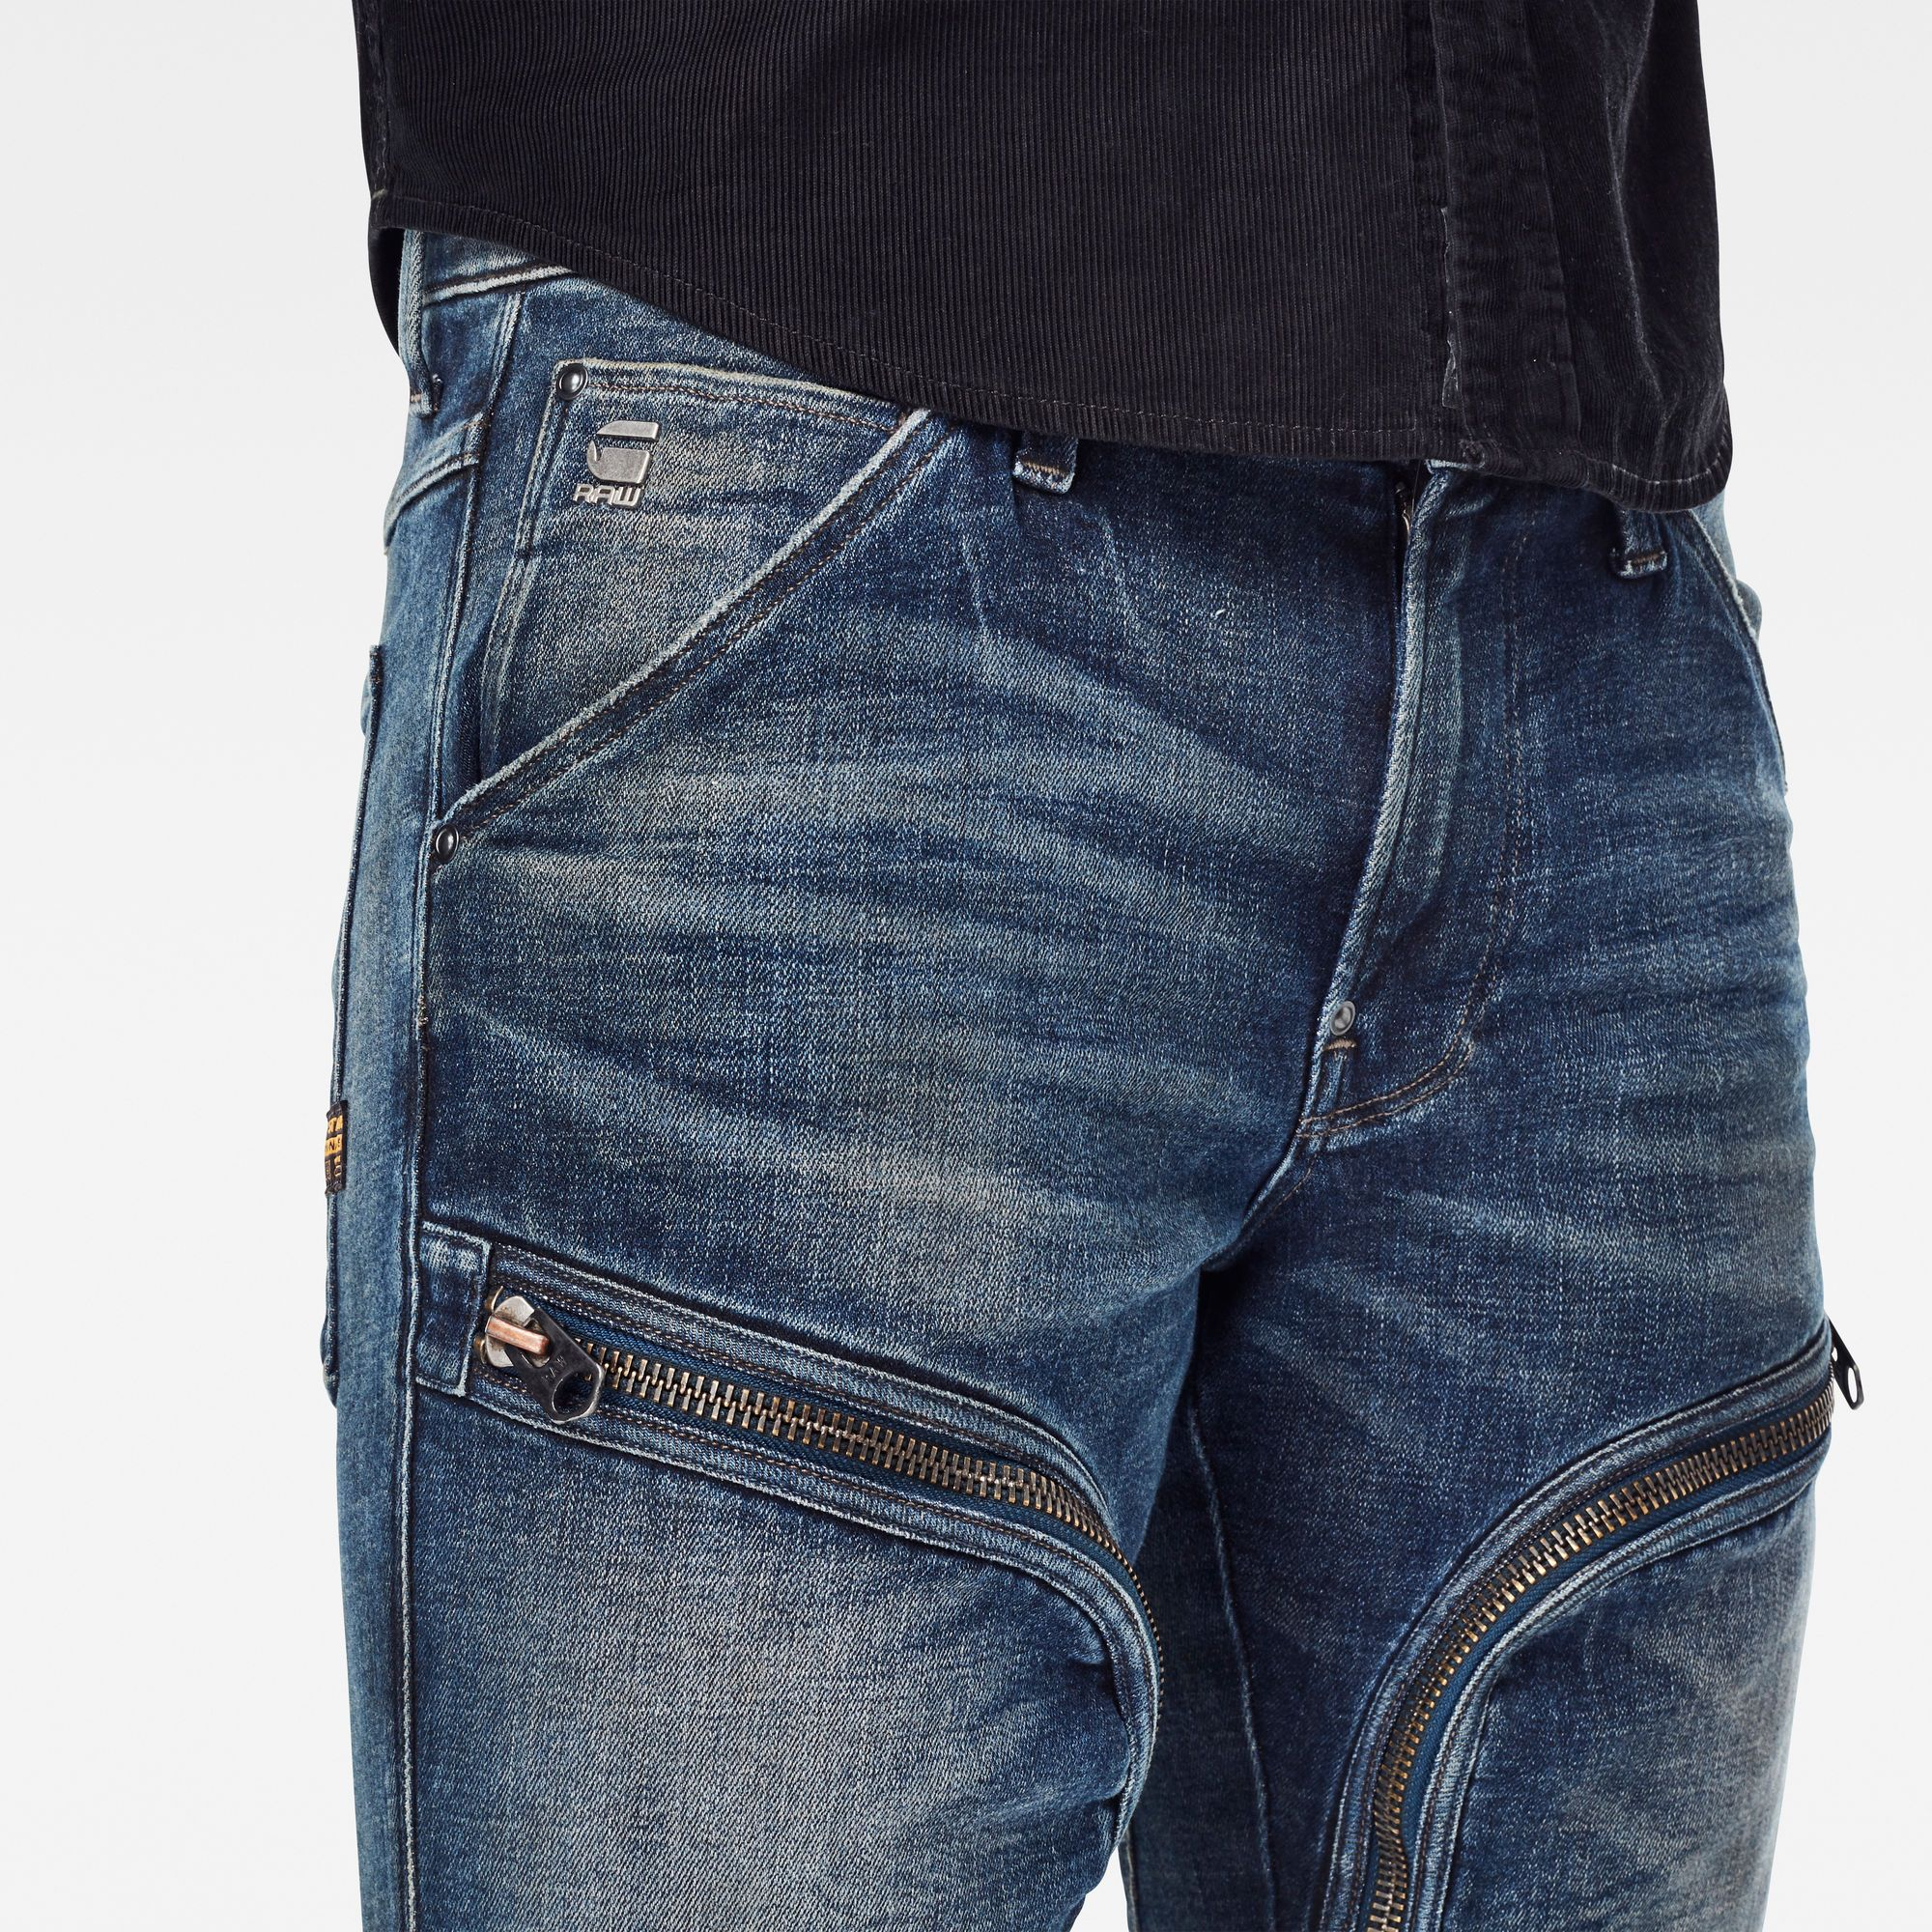 G-Star RAW Air Defence Zip Skinny Jeans